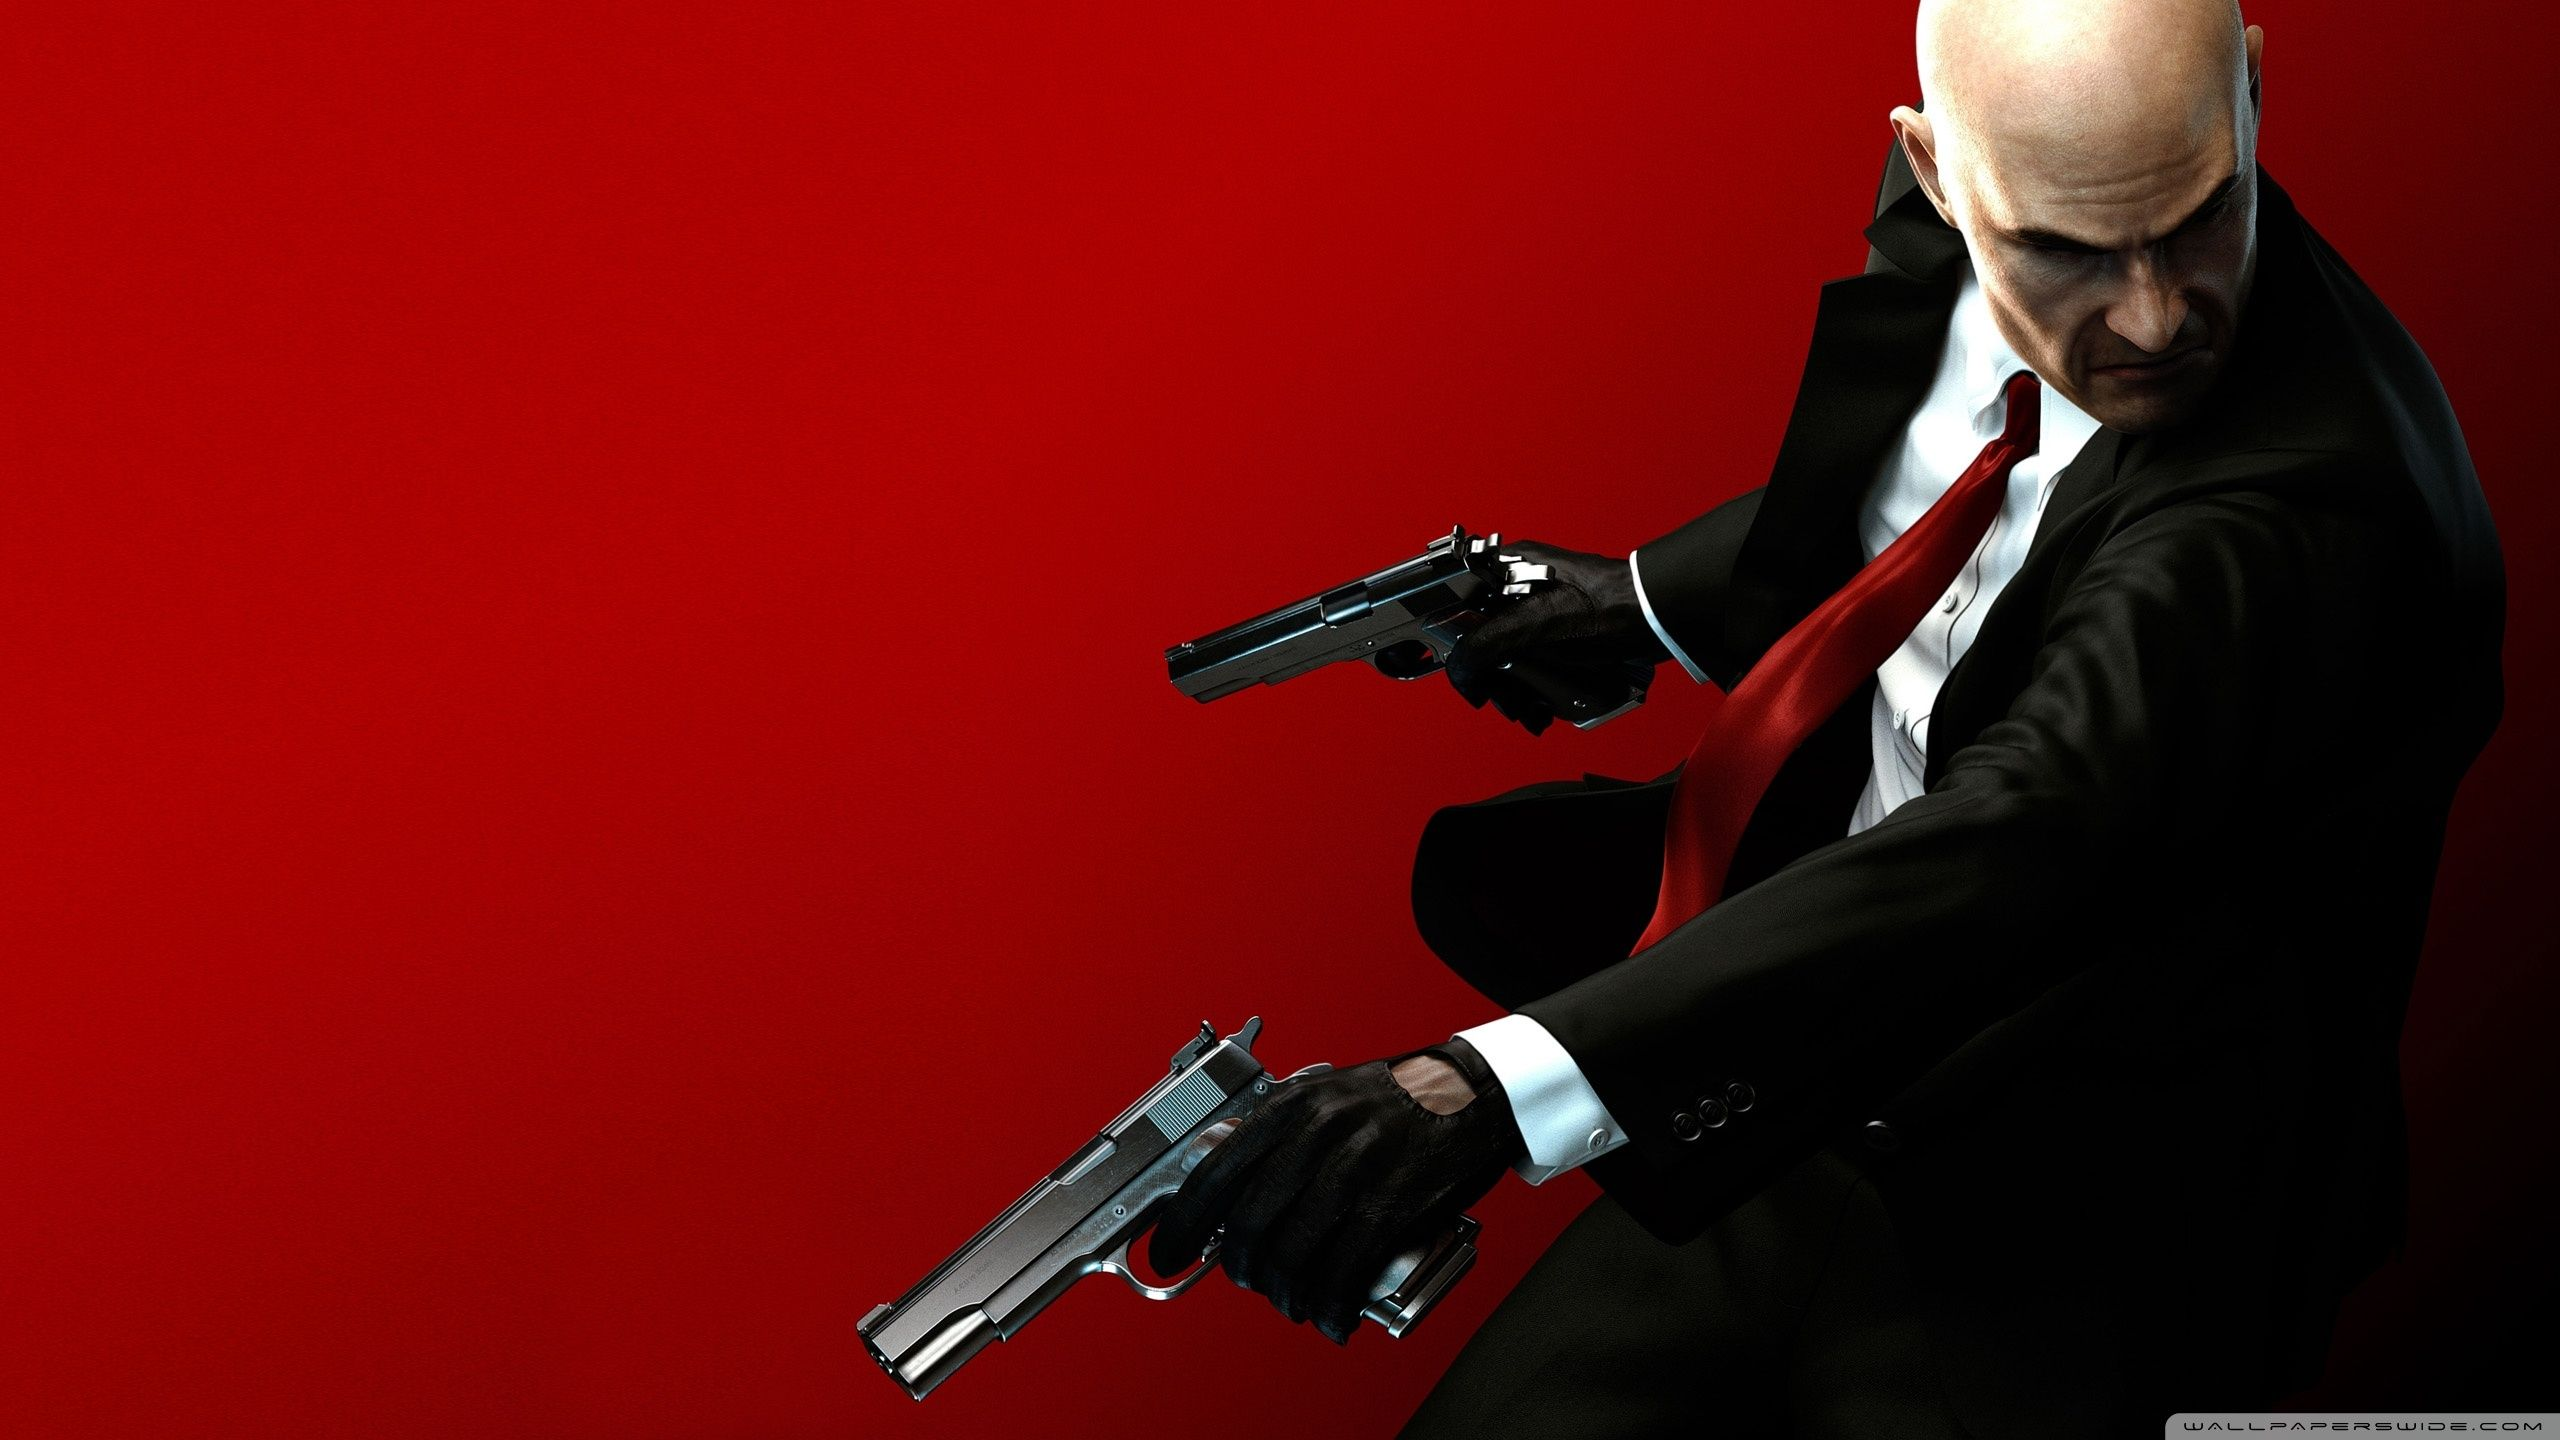 Hitman Absolution Wallpapers Top Free Hitman Absolution